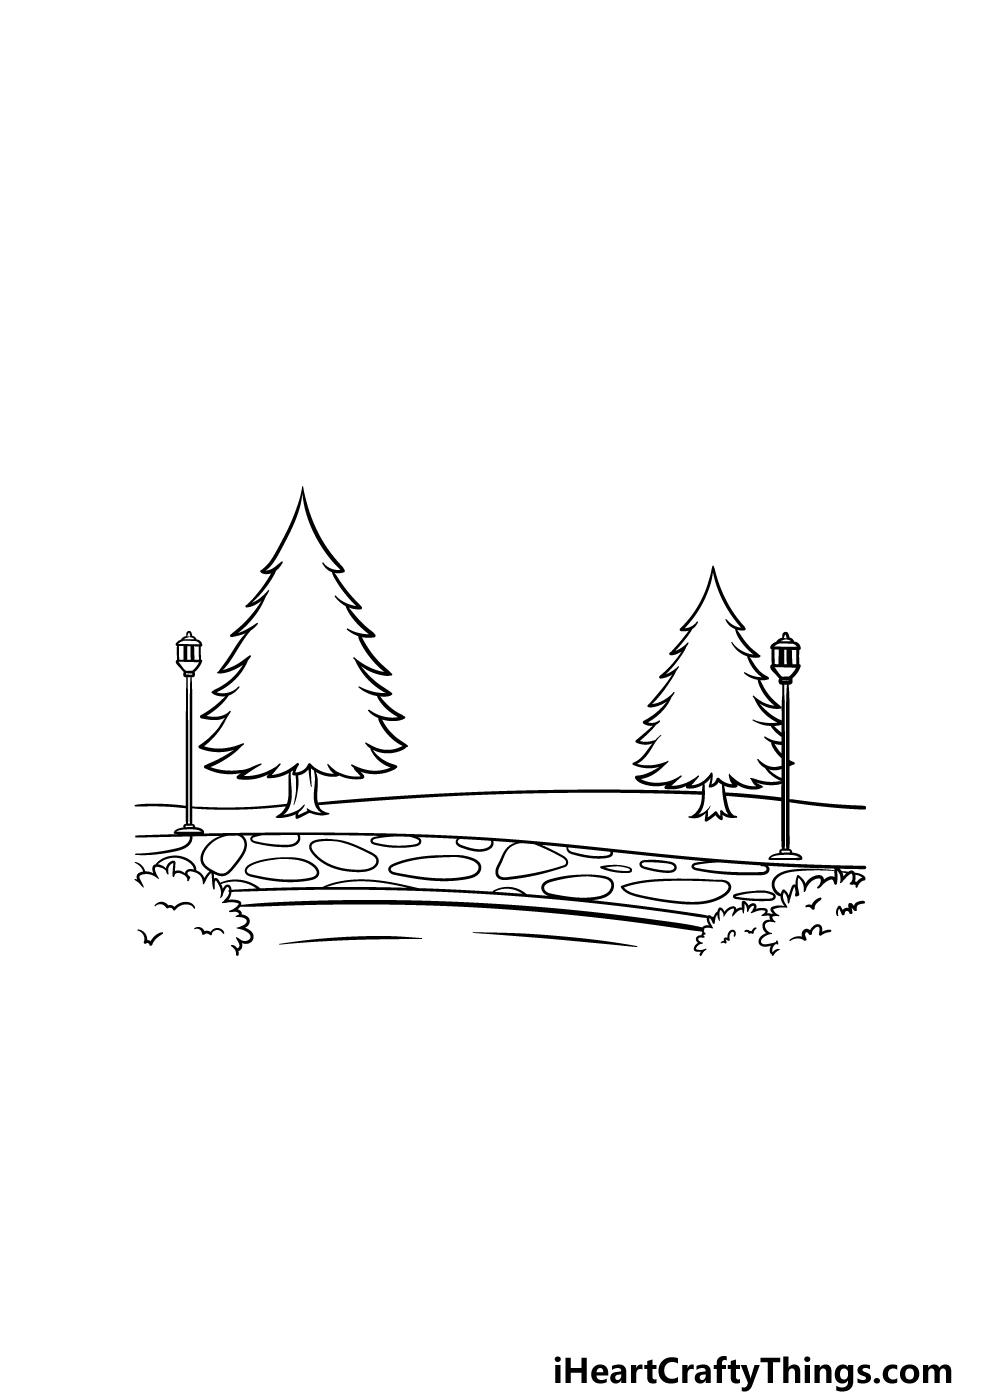 drawing a park step 3